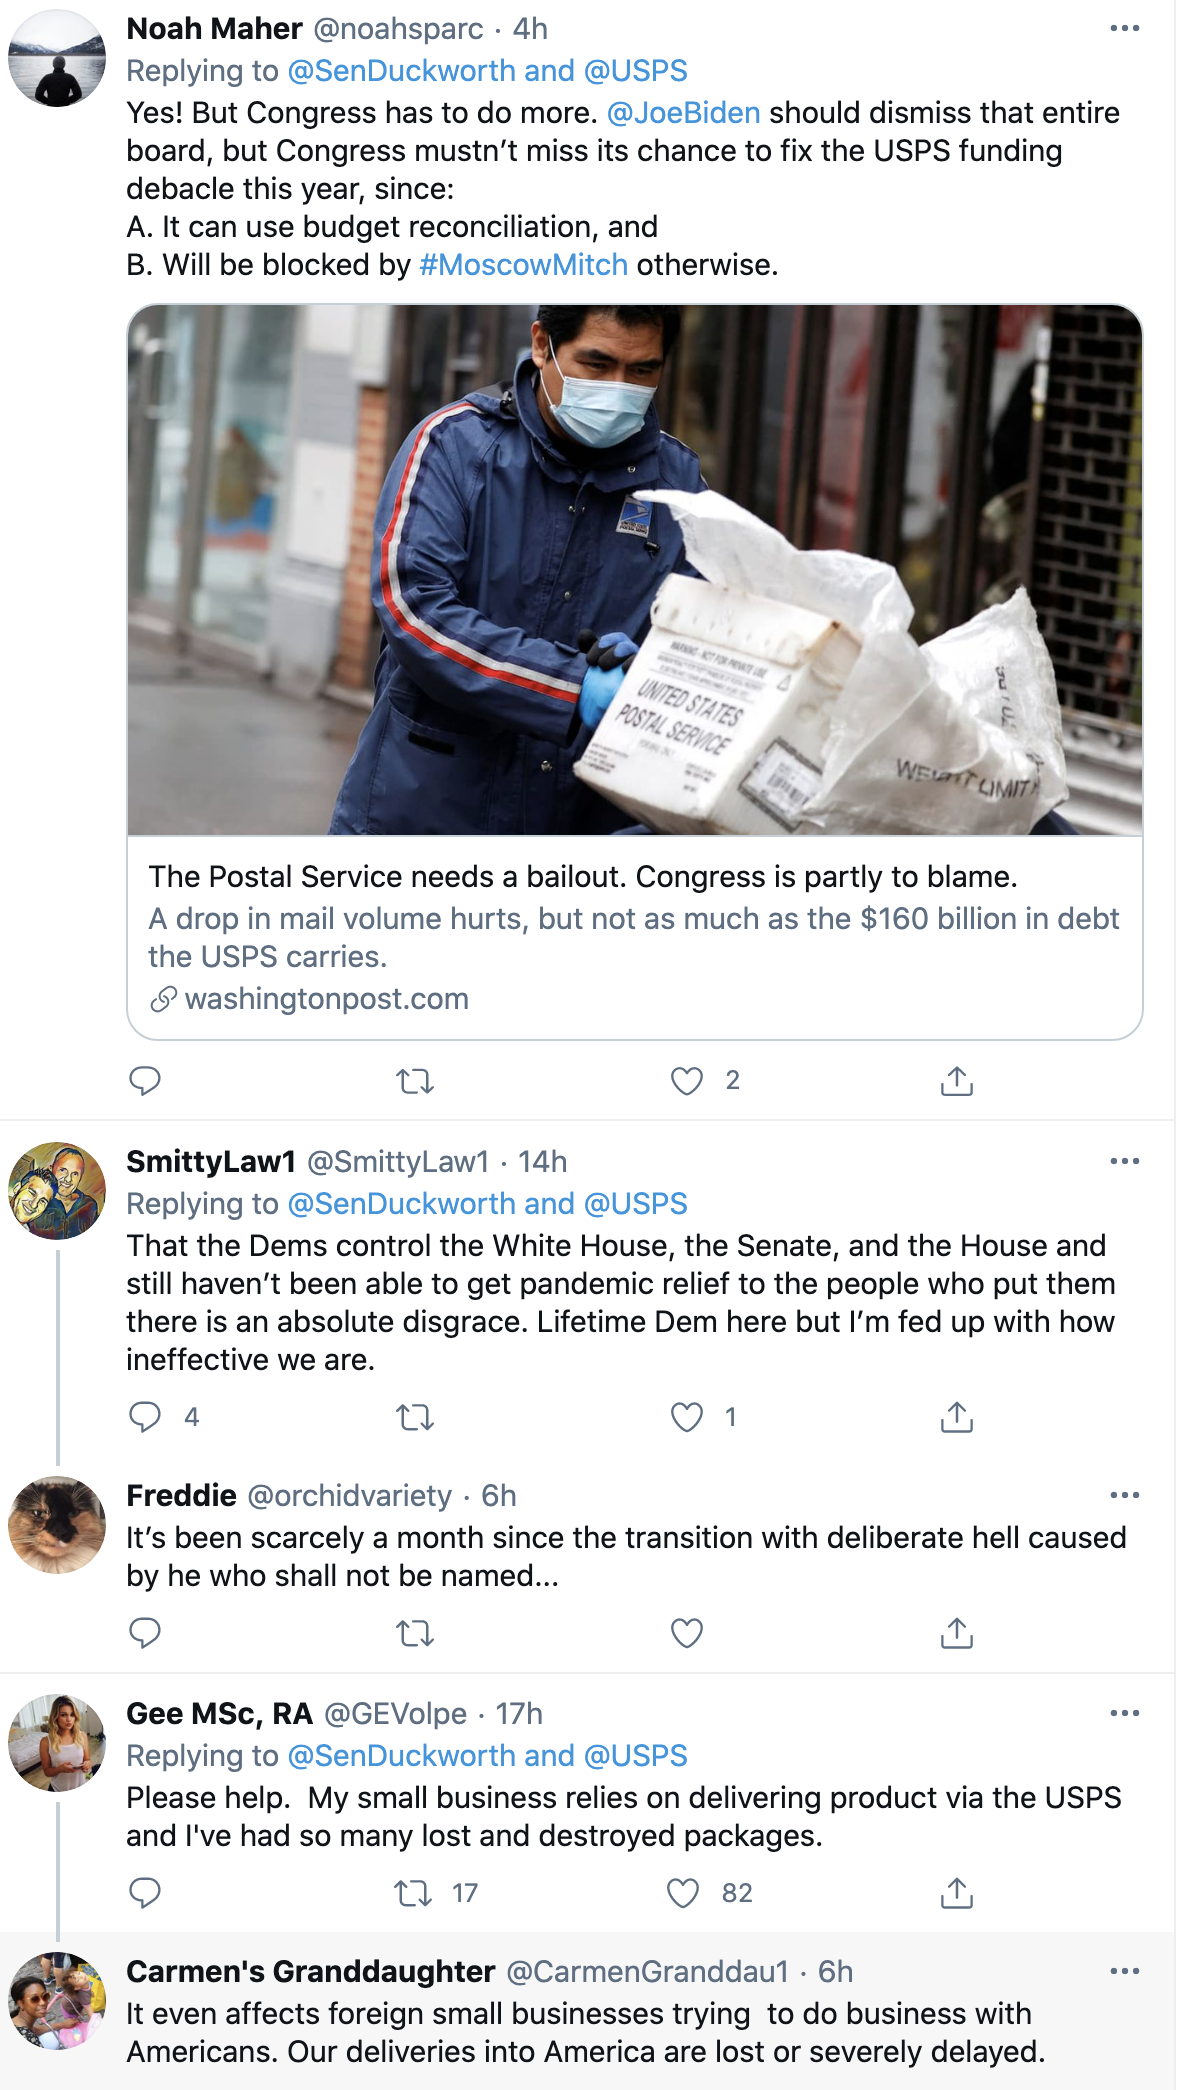 Screen-Shot-2021-02-15-at-8.19.08-AM Termination Of Entire US Postal Service Board To Oust Dejoy Demanded By Senator Corruption Donald Trump Featured Politics Top Stories